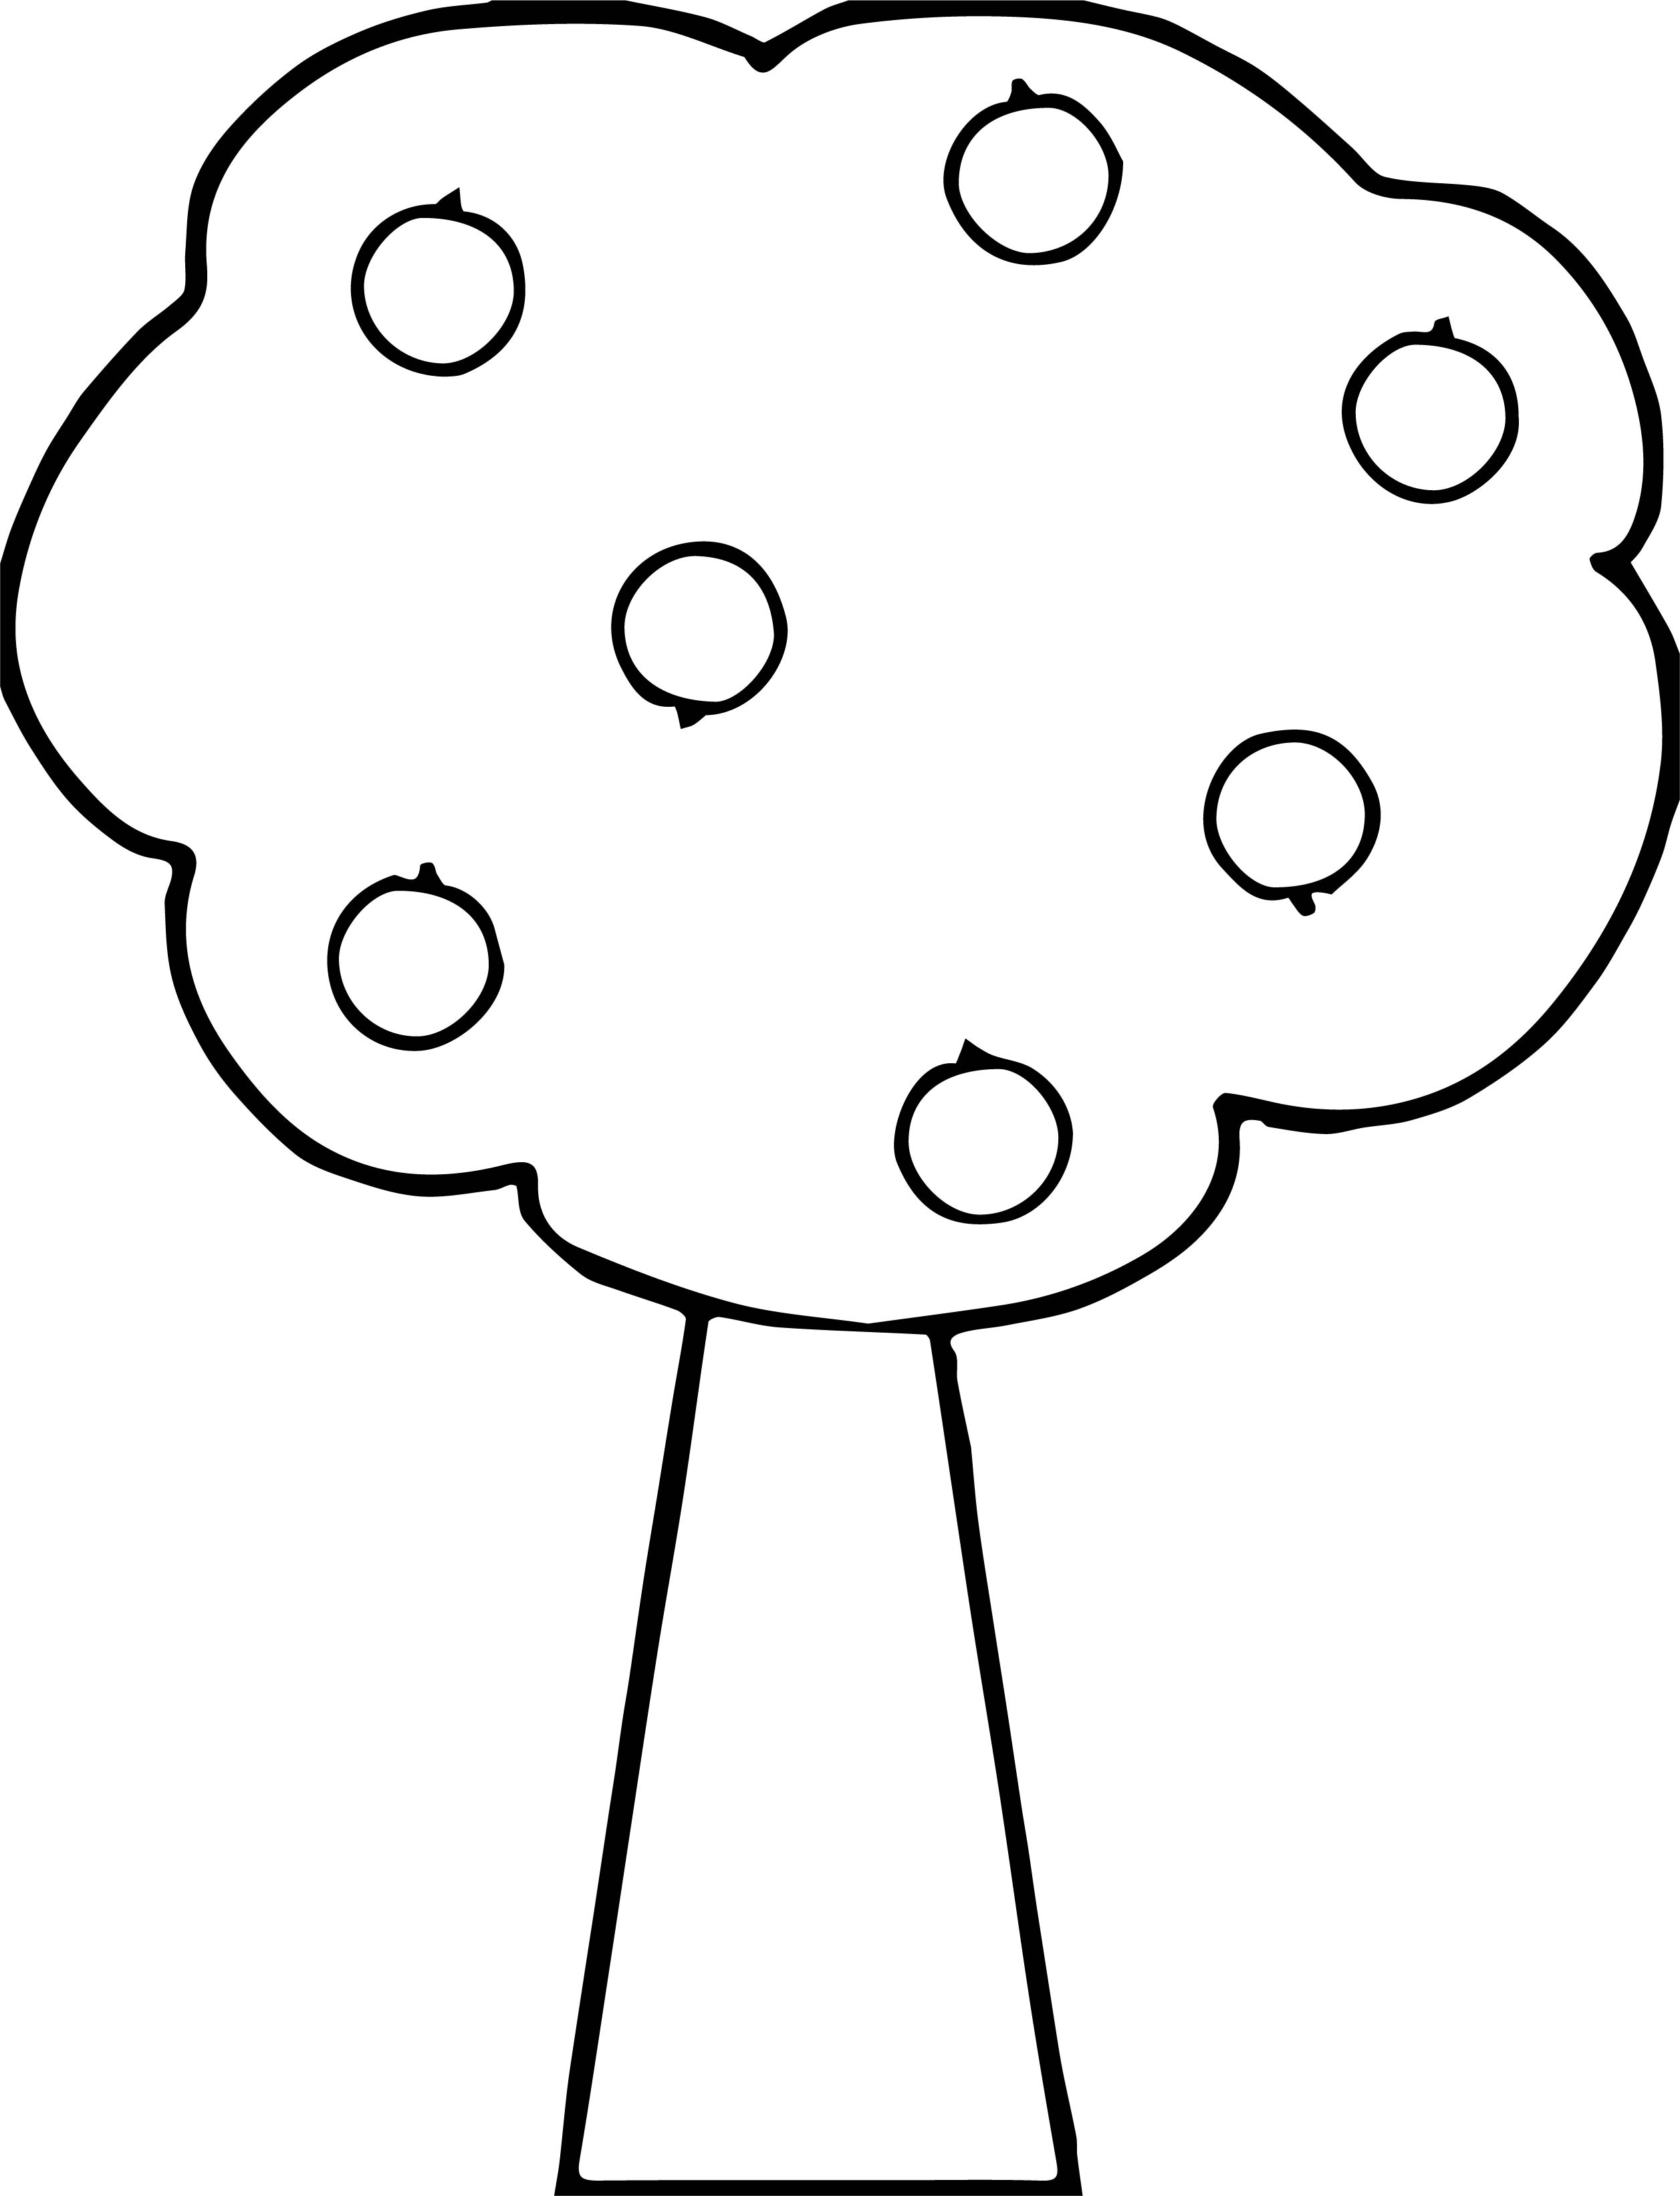 good apple tree coloring pages - Apple Tree Coloring Page